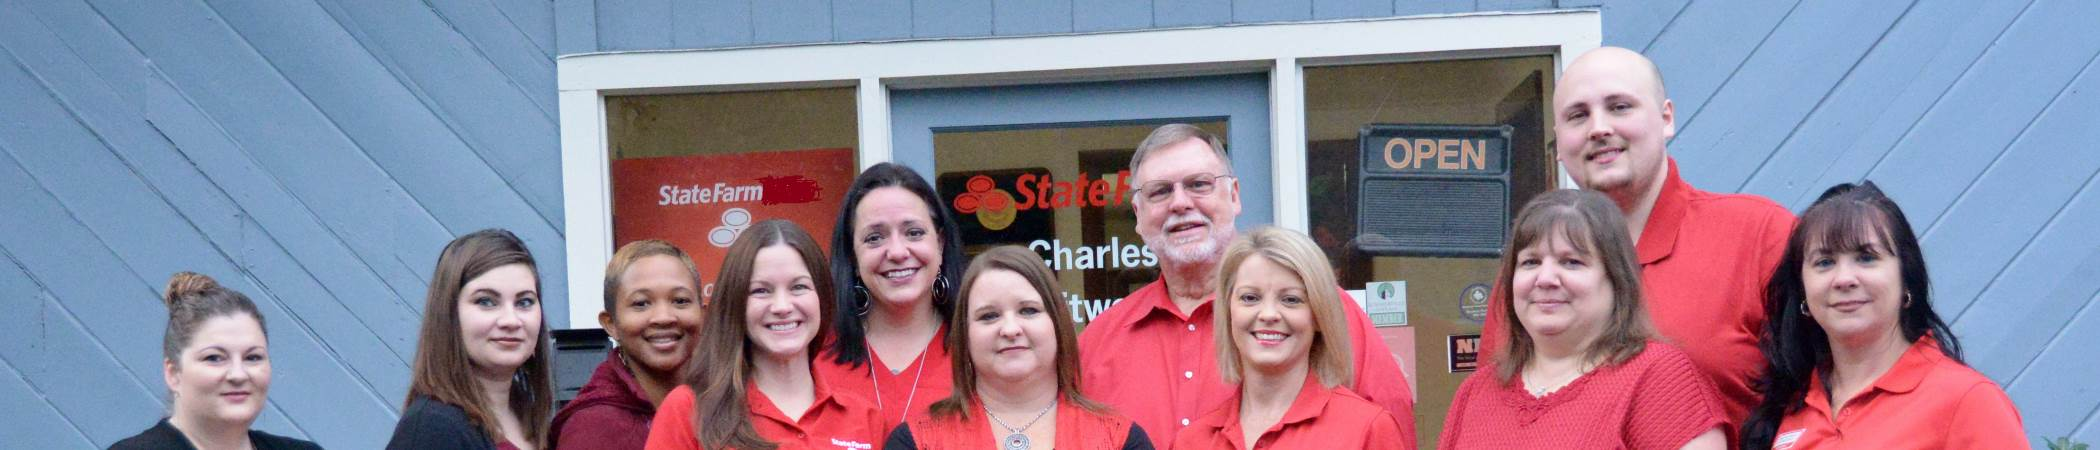 Charles Chitwood State Farm Insurance in Summerville, SC | Home, Auto Insurance & more